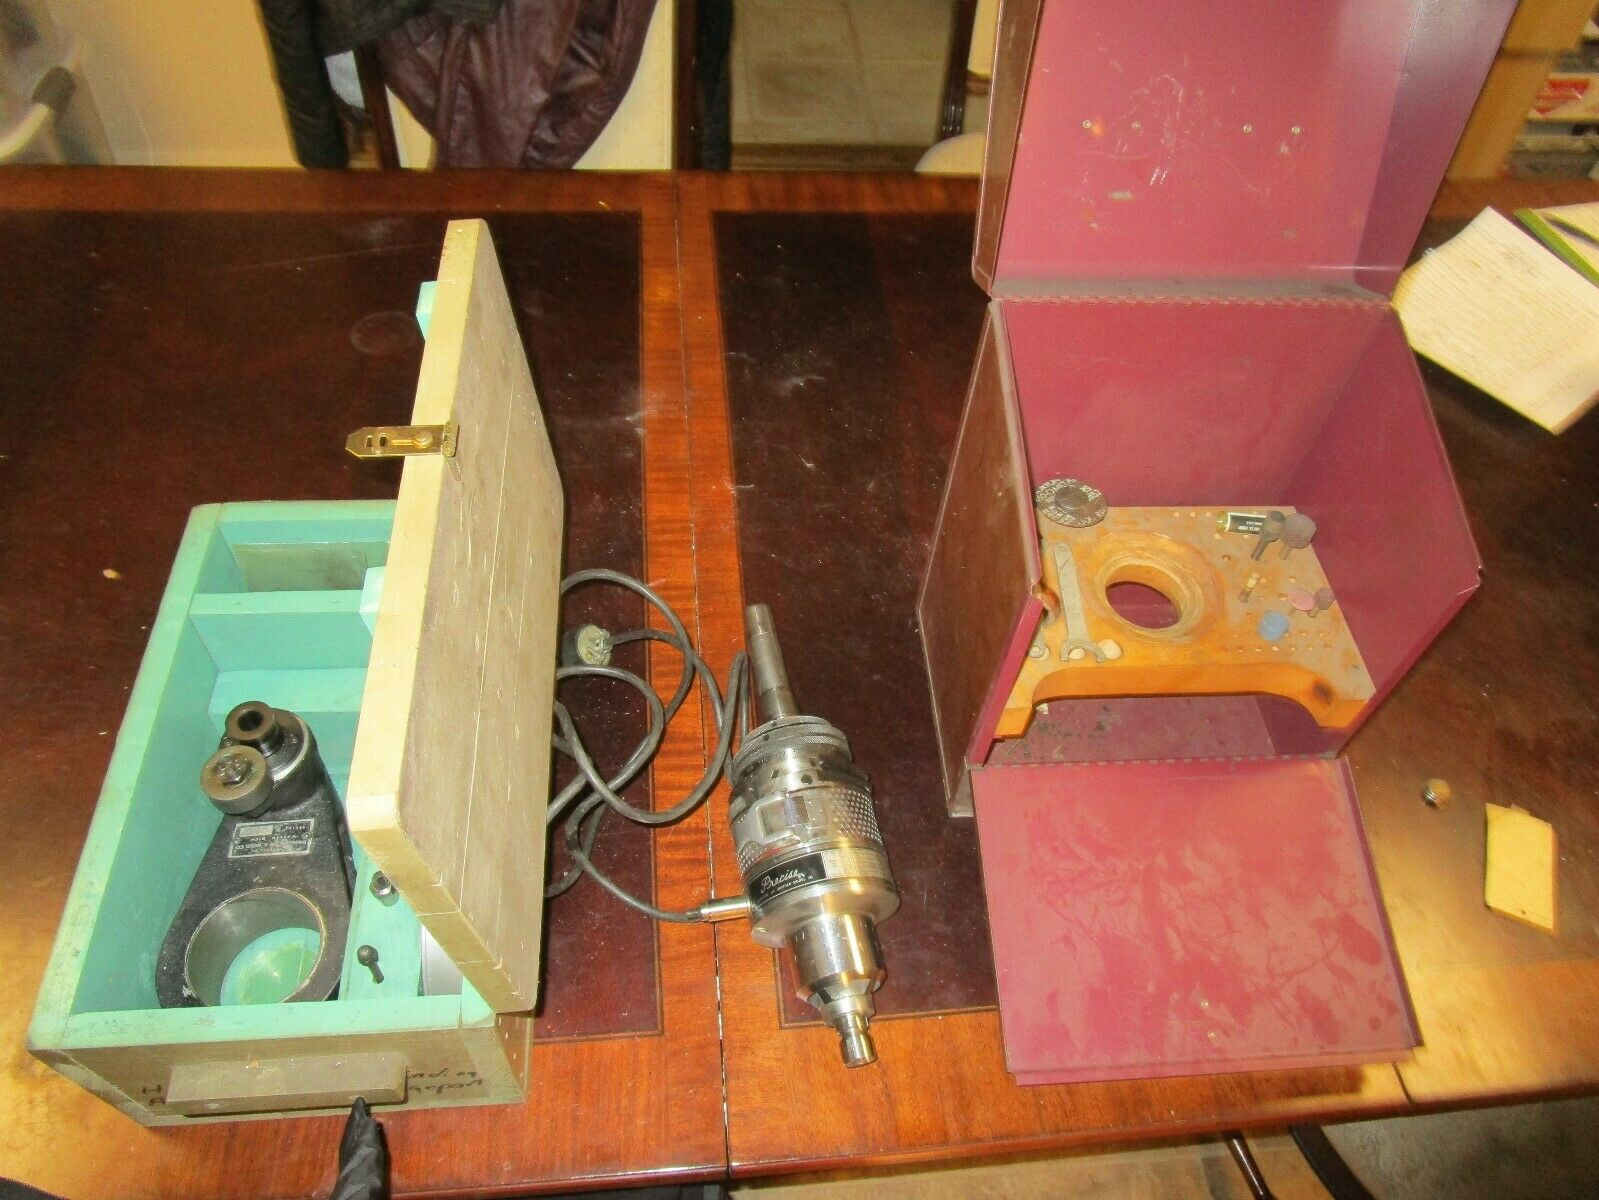 Percise electric jig grinder modle J1L with attachmet diamond die and mold